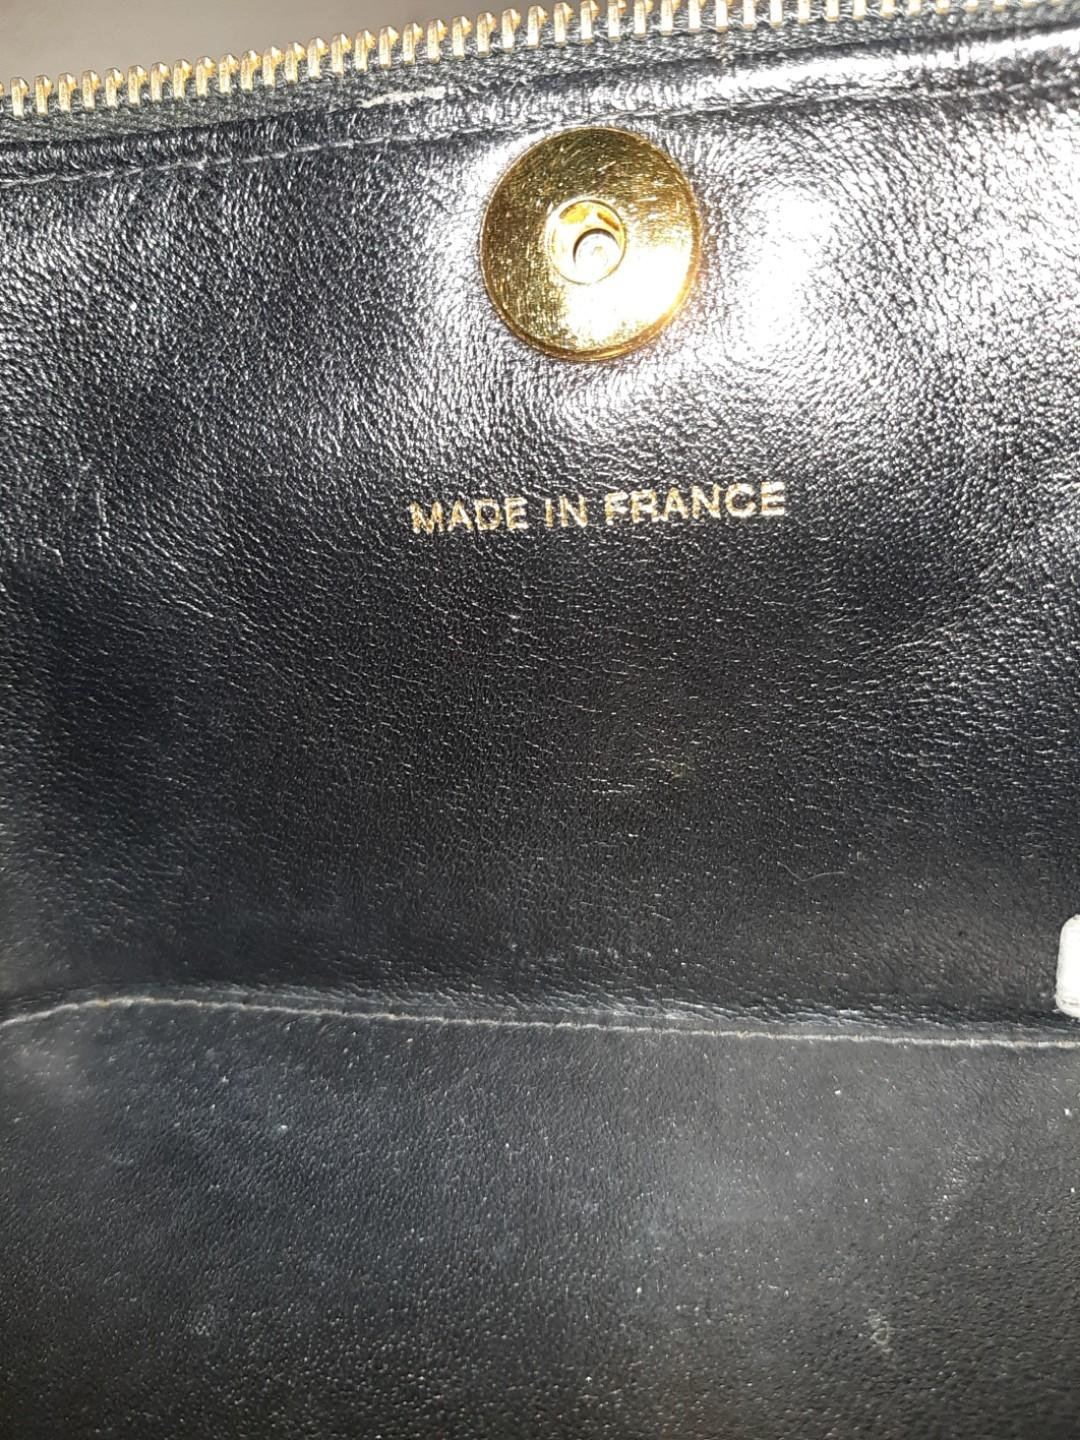 AUTHENTIC CHANEL CC LOGO VANITY BAG - IN SHINY BLACK PATENT LEATHER - 24K GOLD PLATED HARDWARE- HOLOGRAM STICKER INTACT- CLEAN INTERIOR, SOLID SHAPE STRUCTURE - COMES WITH EXTRA LONG CHAIN STRAP FOR CROSSBODY / SLING -